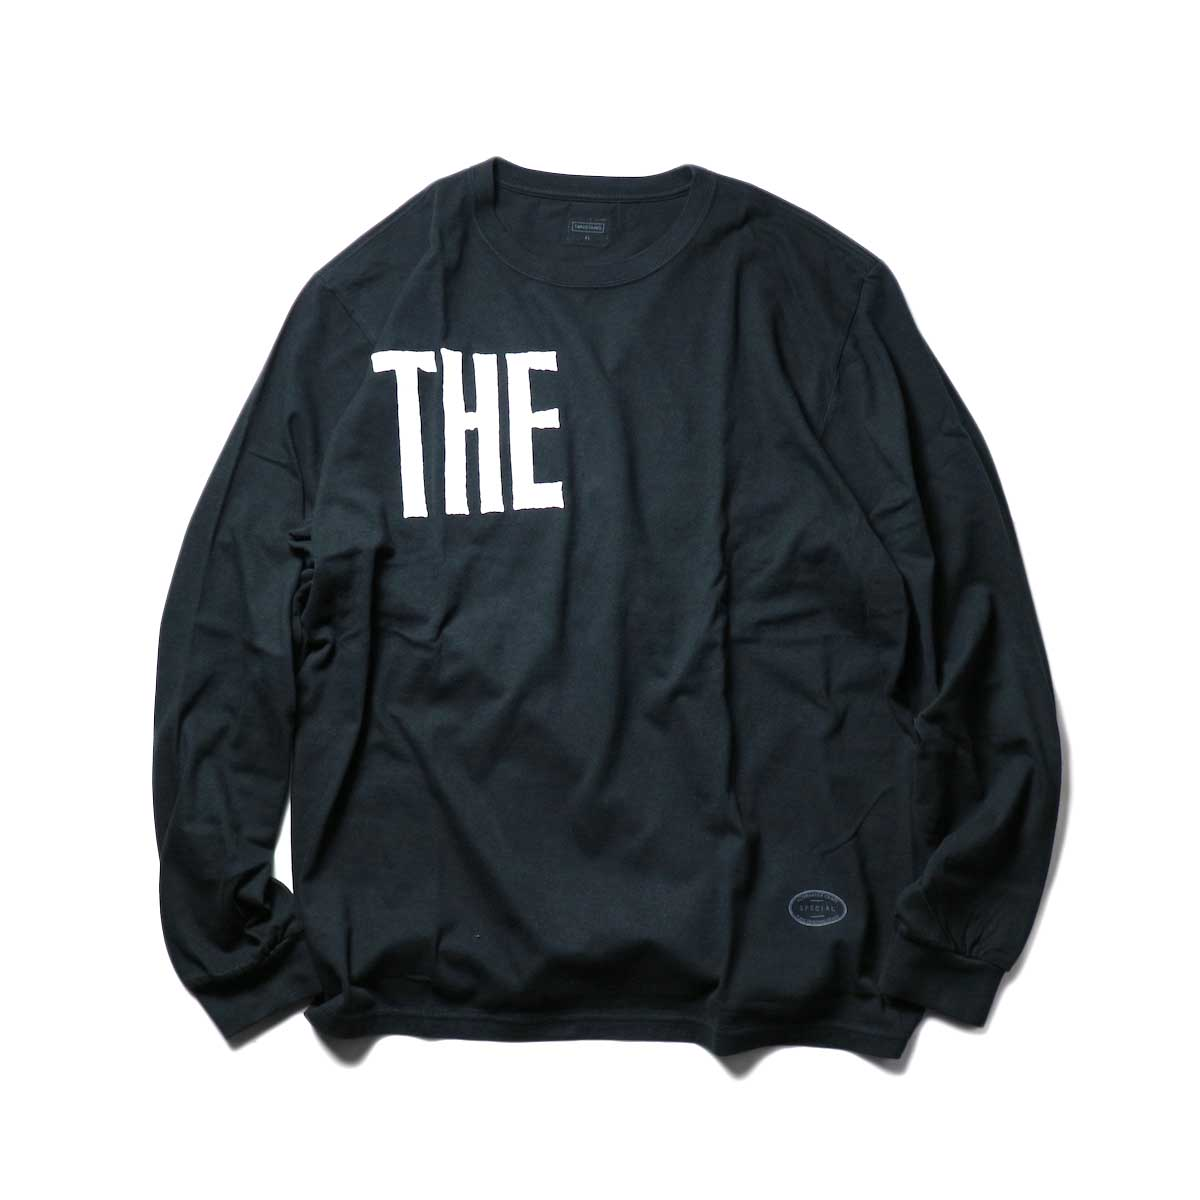 TANGTANG / ARCHIVE -THE- (Black)正面